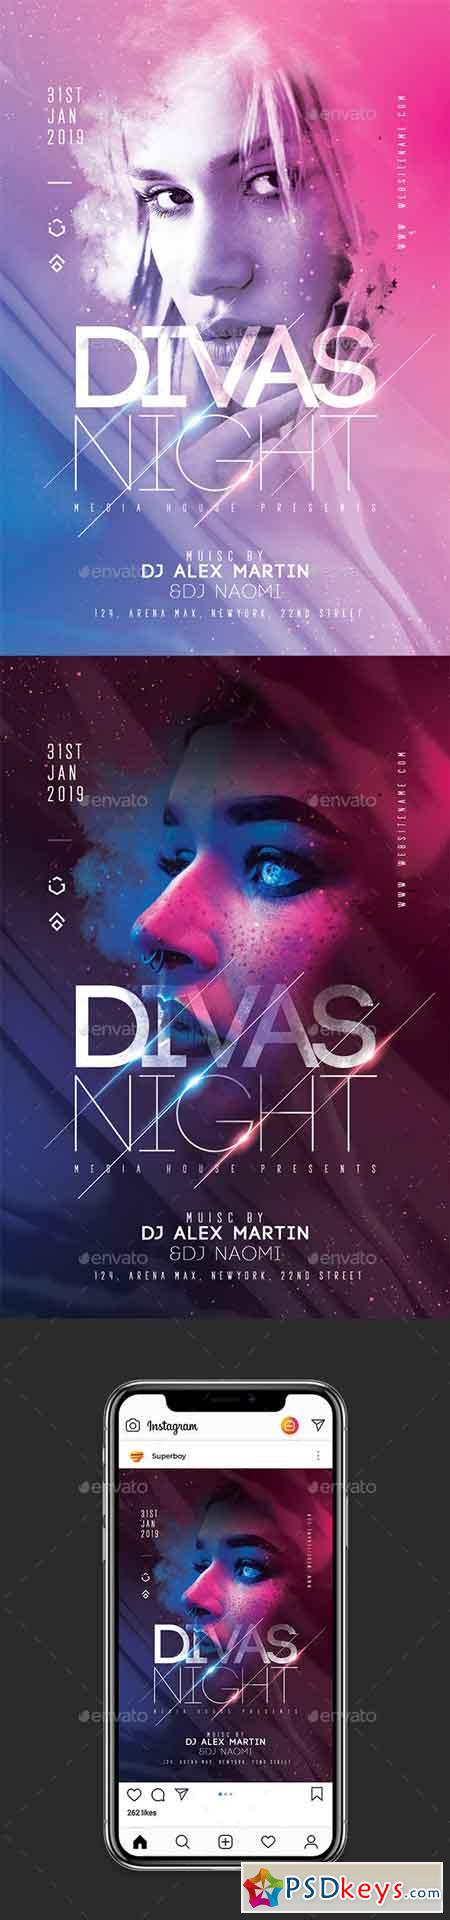 Divas Night Party Flyer 23085294